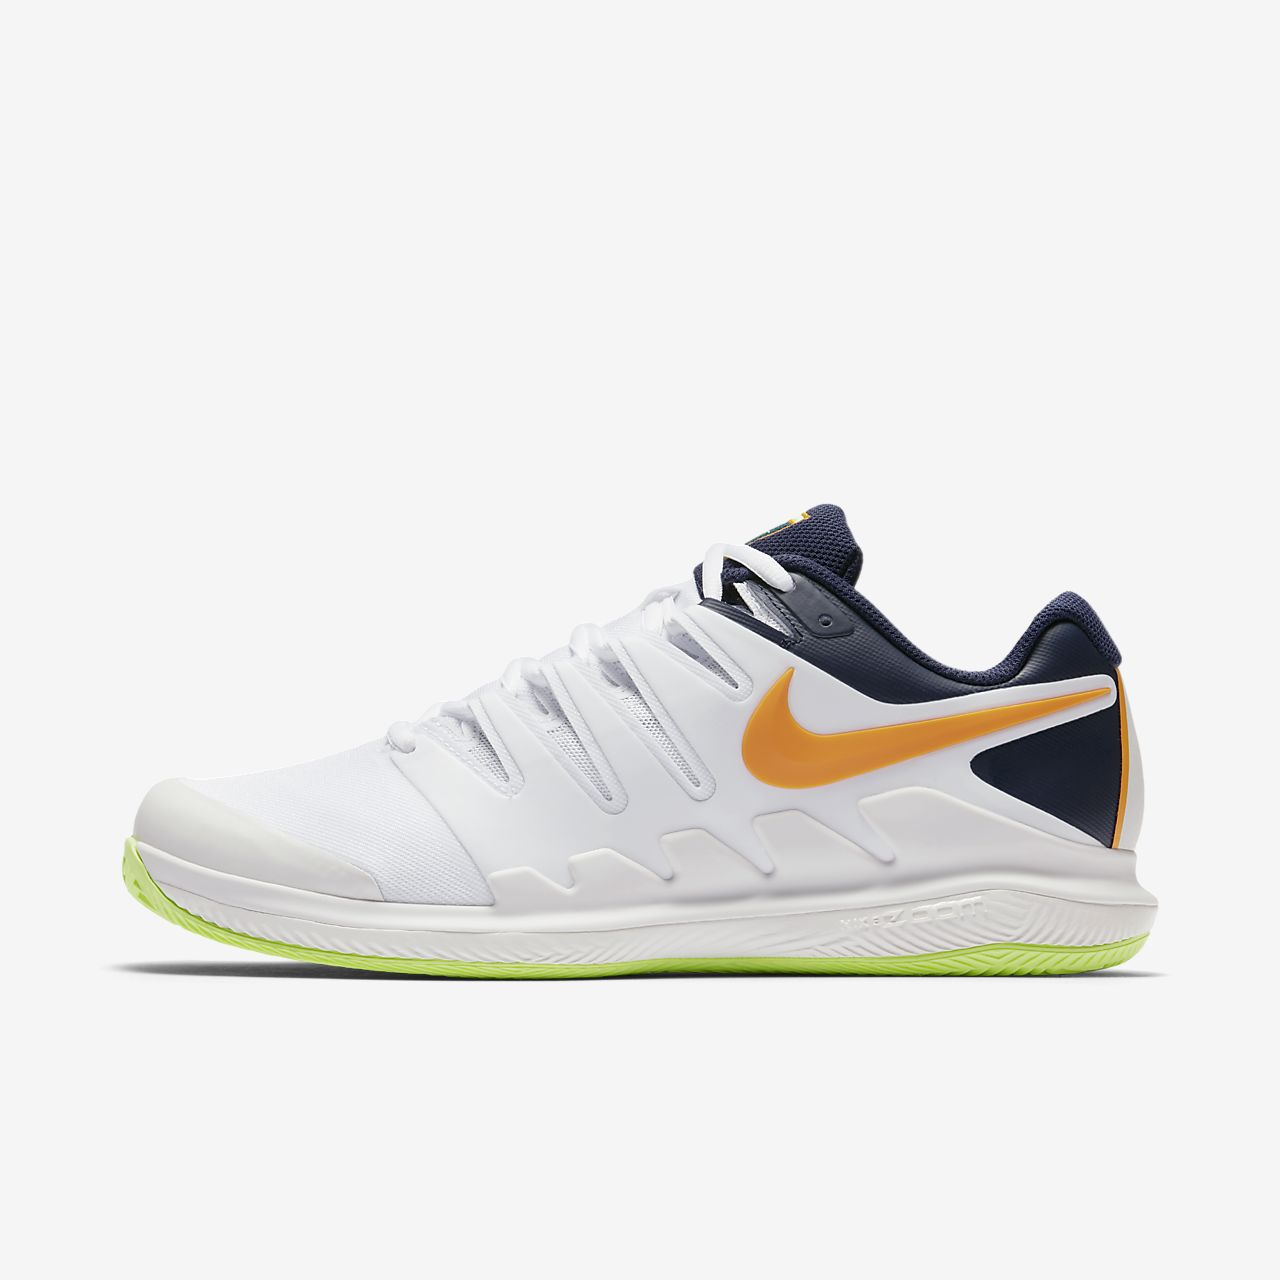 tennis Air Uomo Clay Scarpa Nike da Vapor X IT Zoom TtSwa5xqw